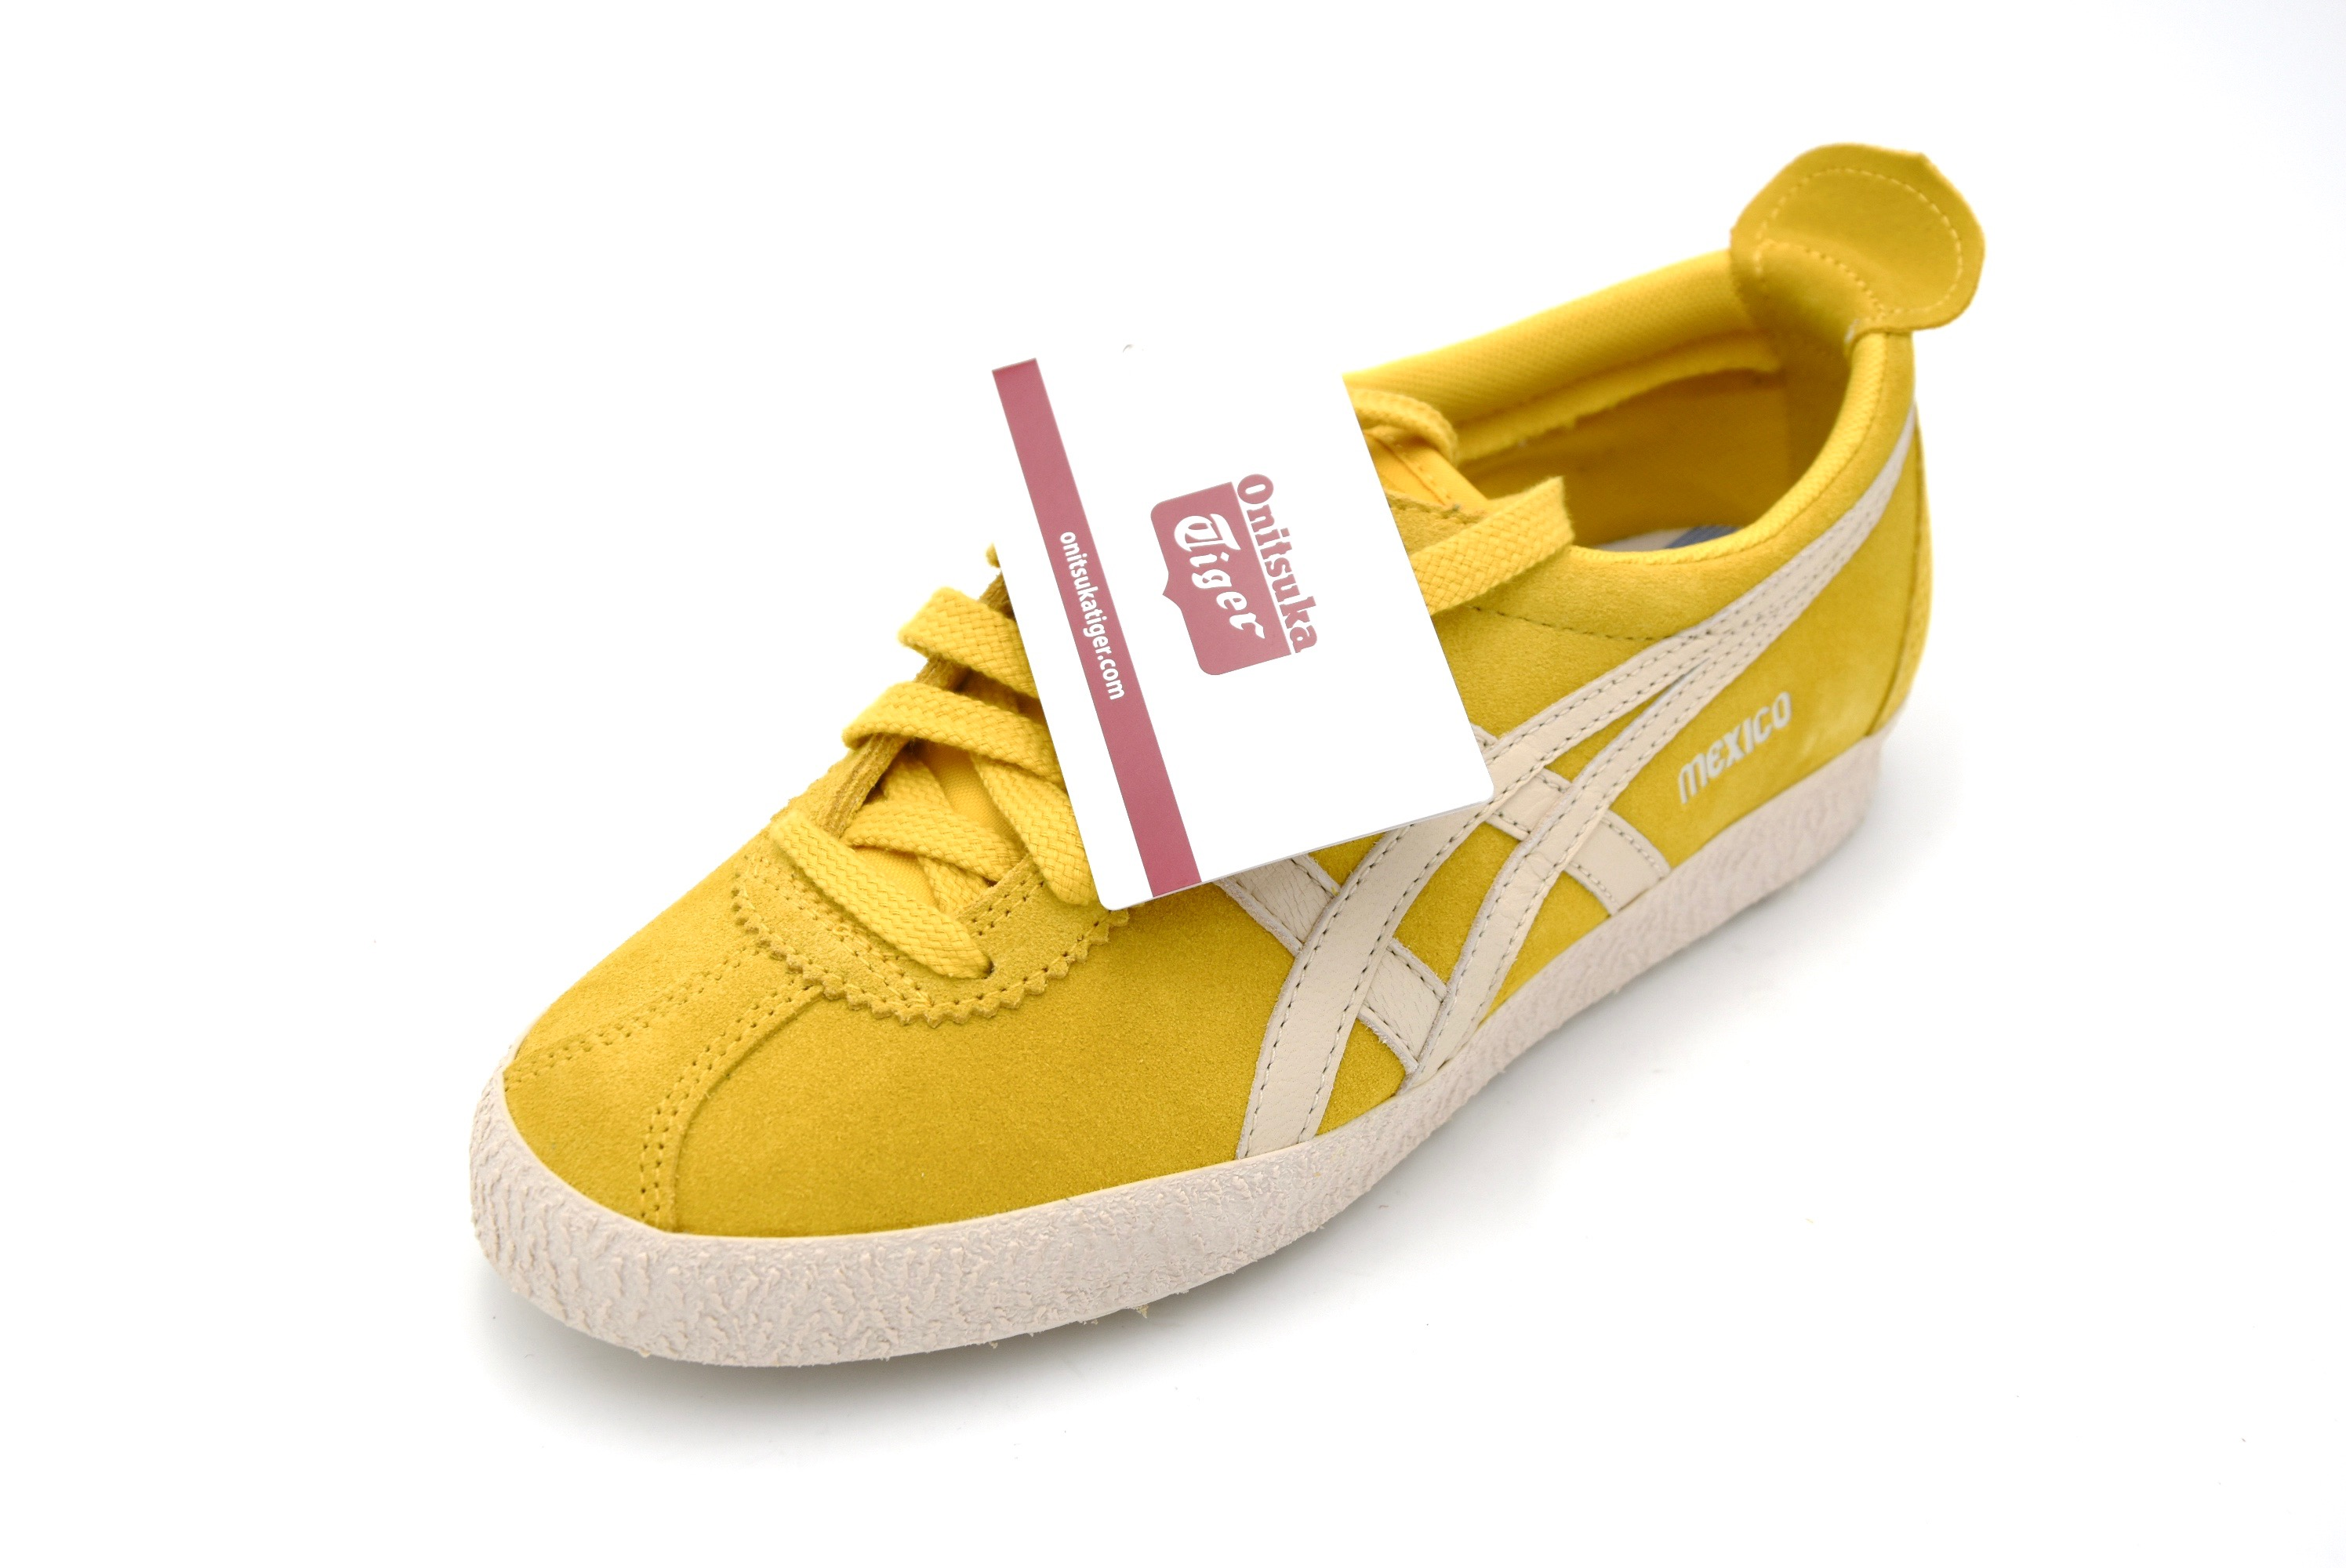 ec0b58491a1593 Details about ONITSUKA TIGER MAN SNEAKER SHOES CASUAL FREE TIME CODE D639L  MEXICO DELEGATION